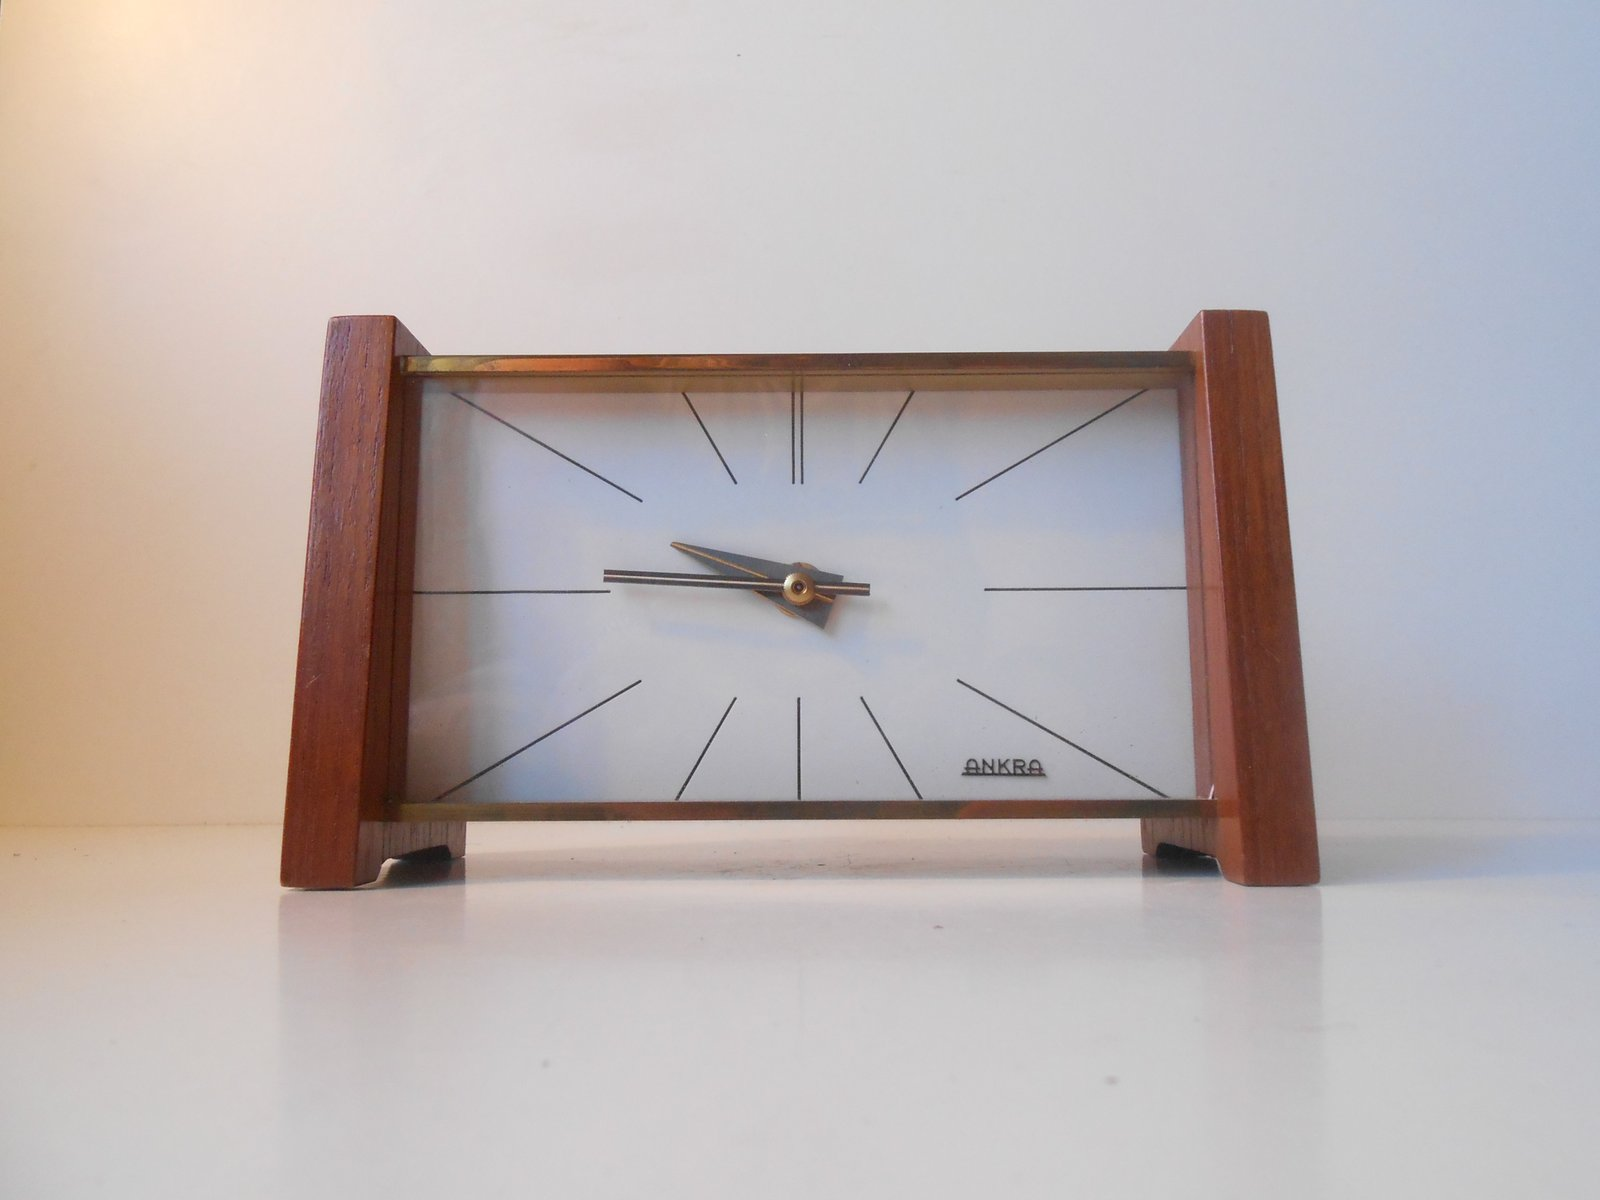 midcentury modern table clock from ankra for sale at pamono - midcentury modern table clock from ankra